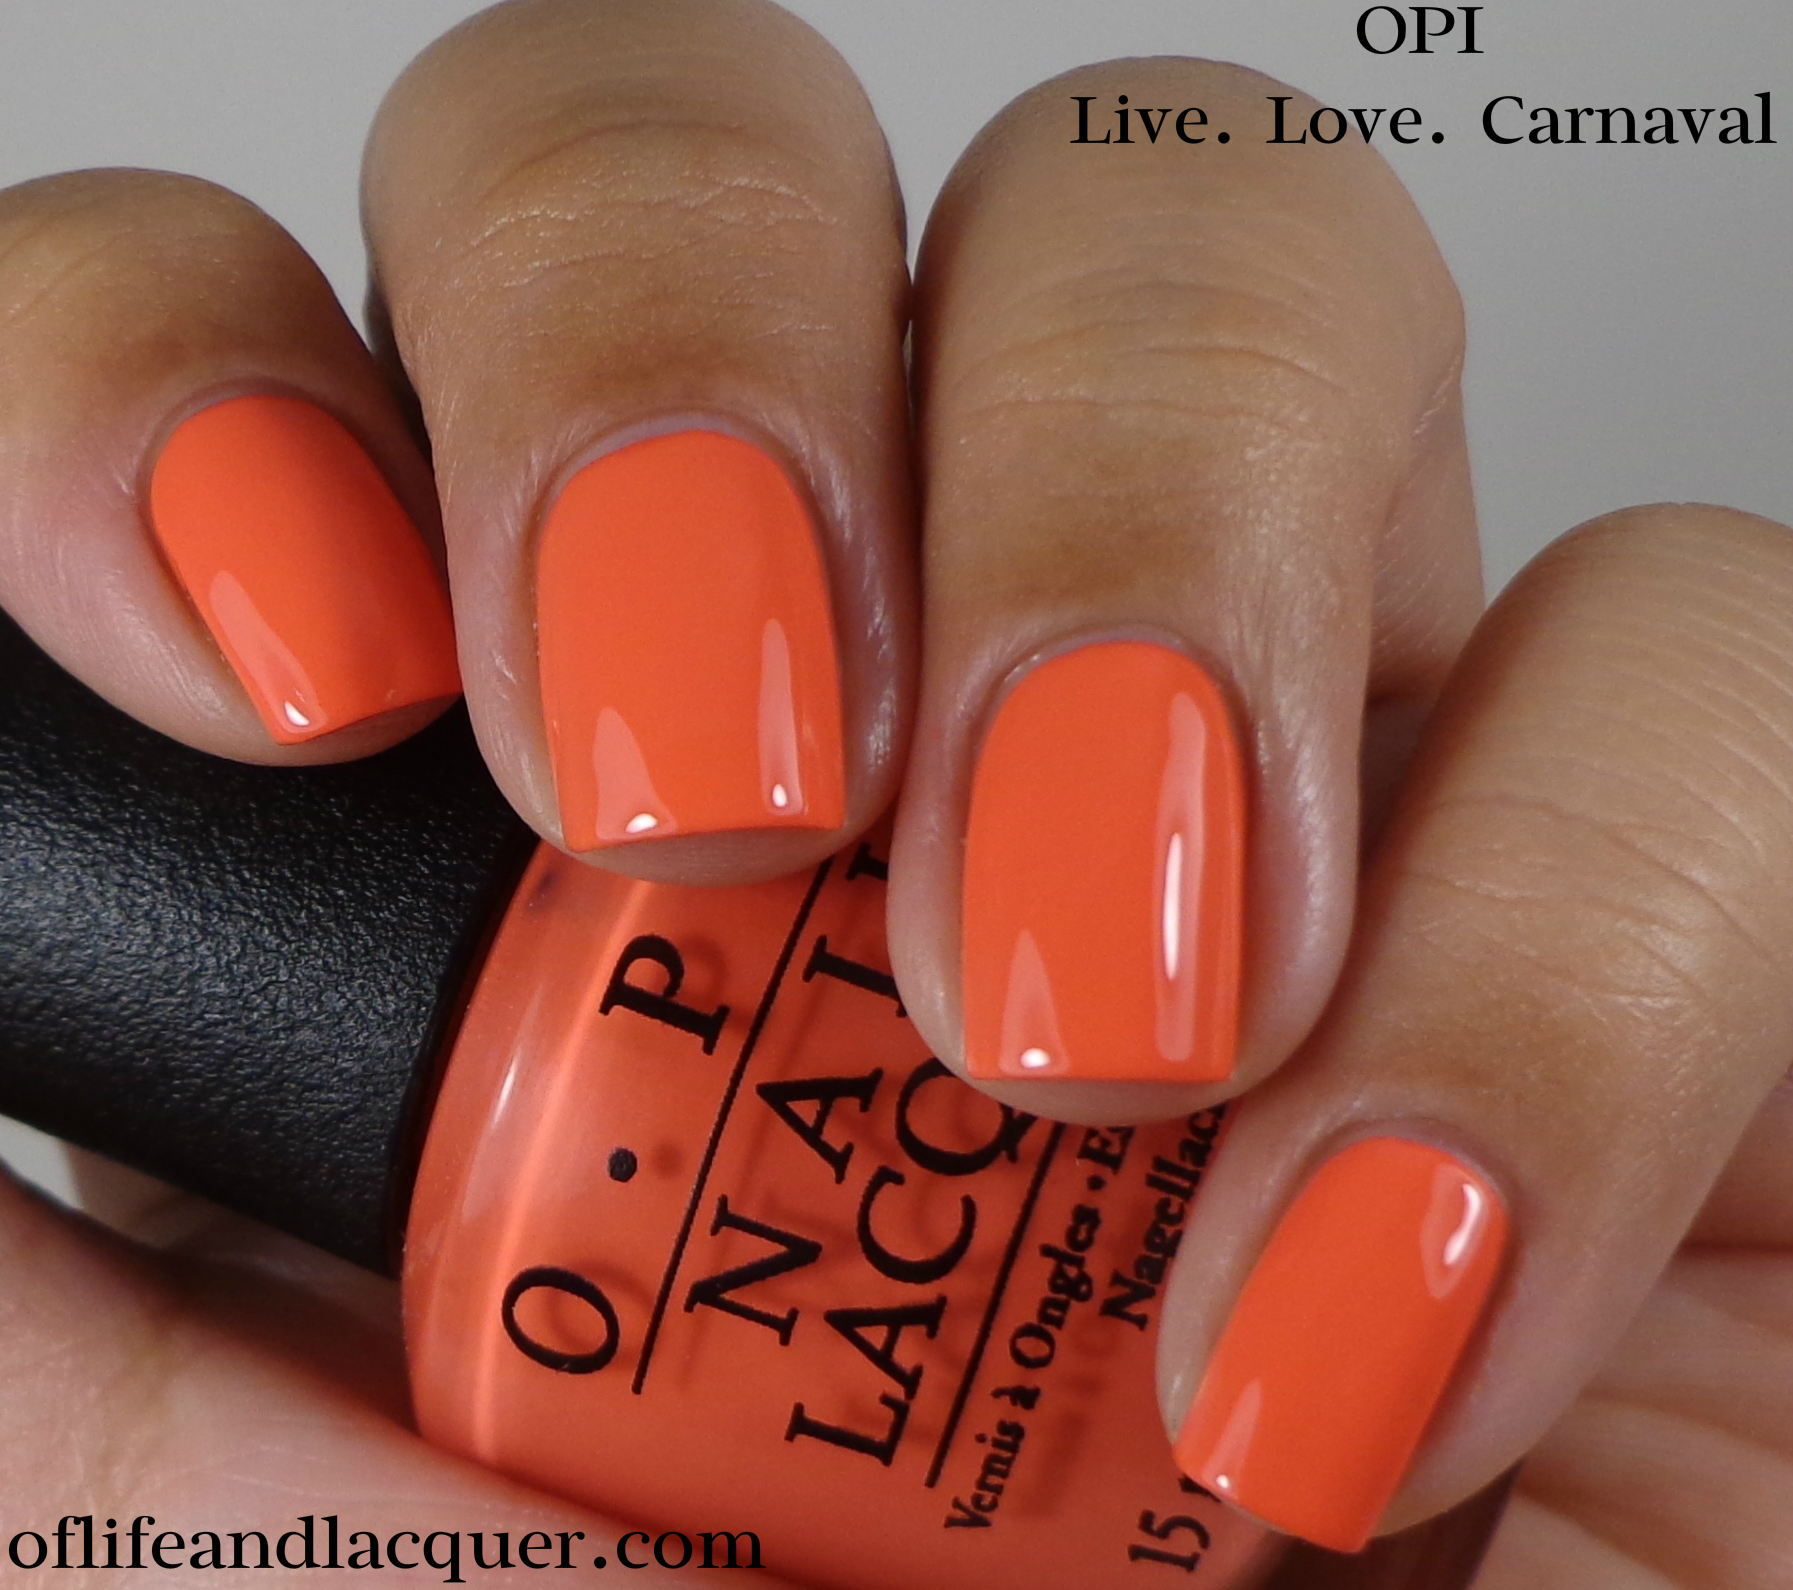 OPI Brazil Collection Spring/Summer 2014